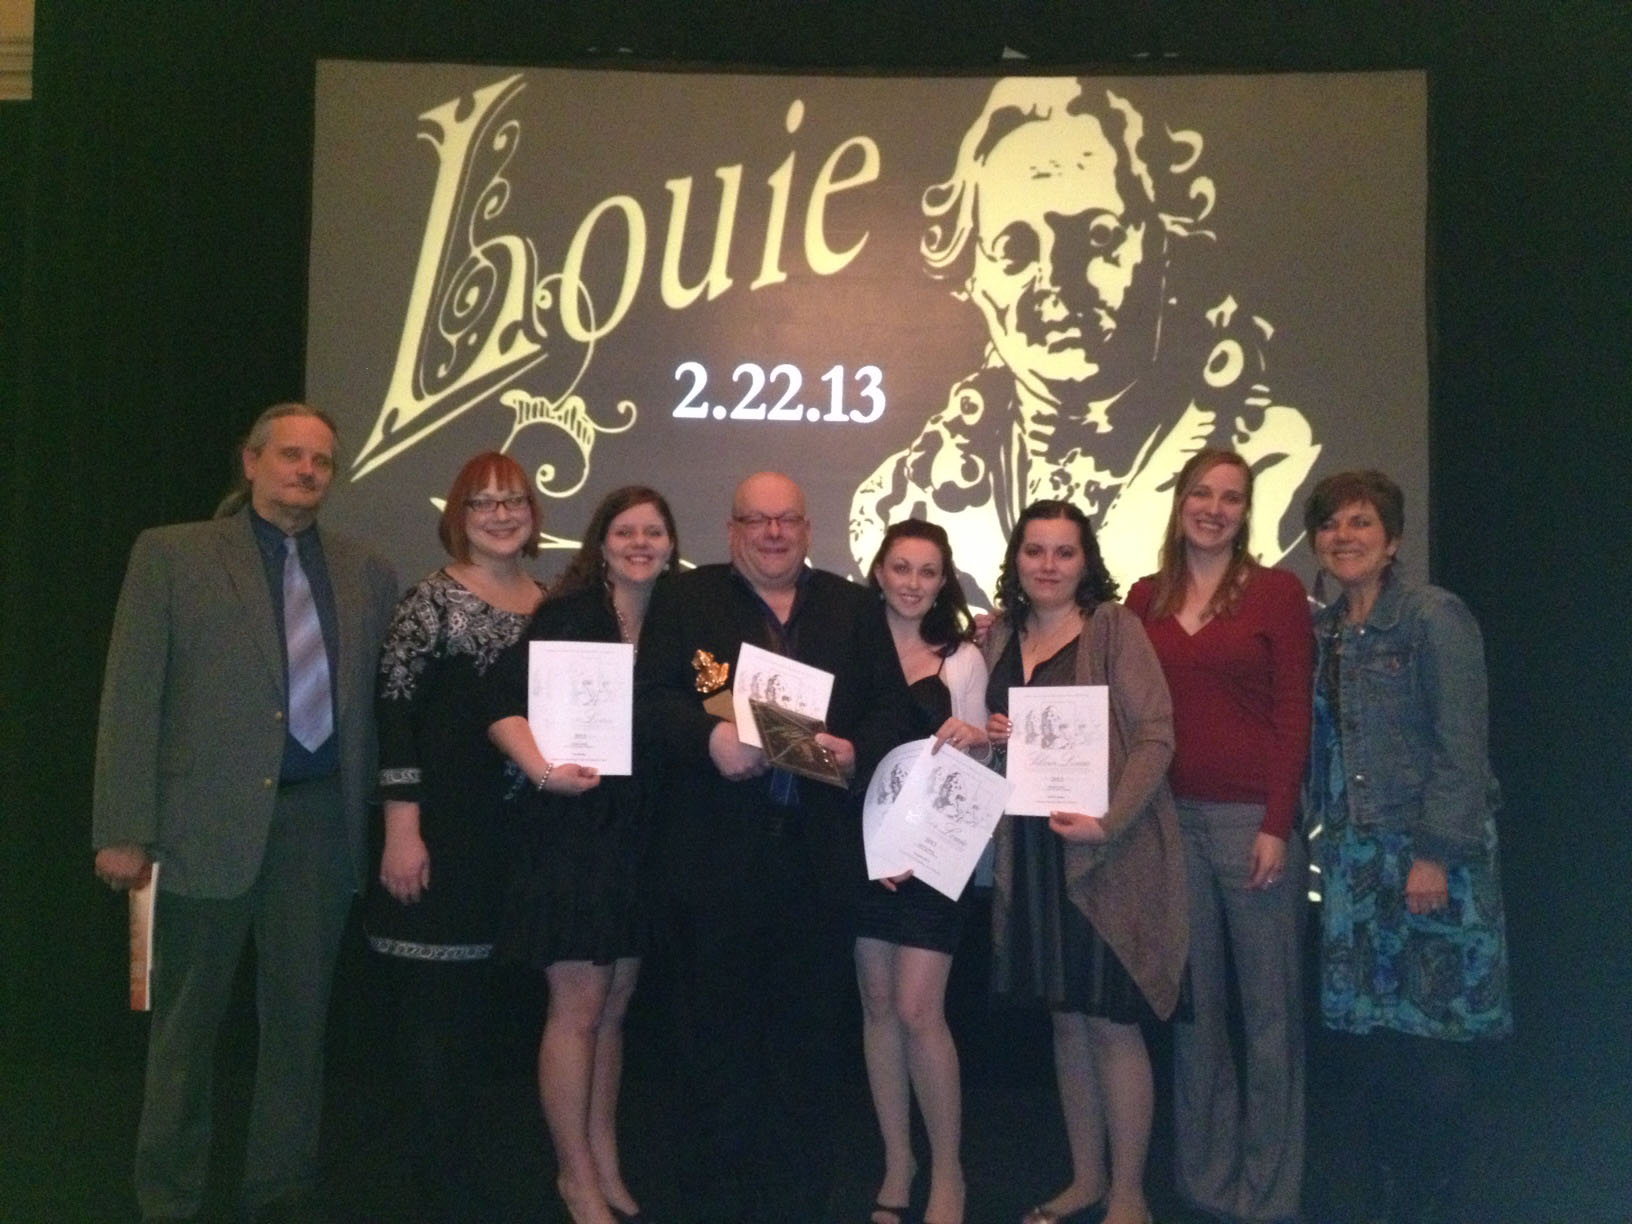 Ivy Tech School of Fine Arts + Design students, faculty, and staff celebrate the winners at the Advertising Federation Louie Awards!